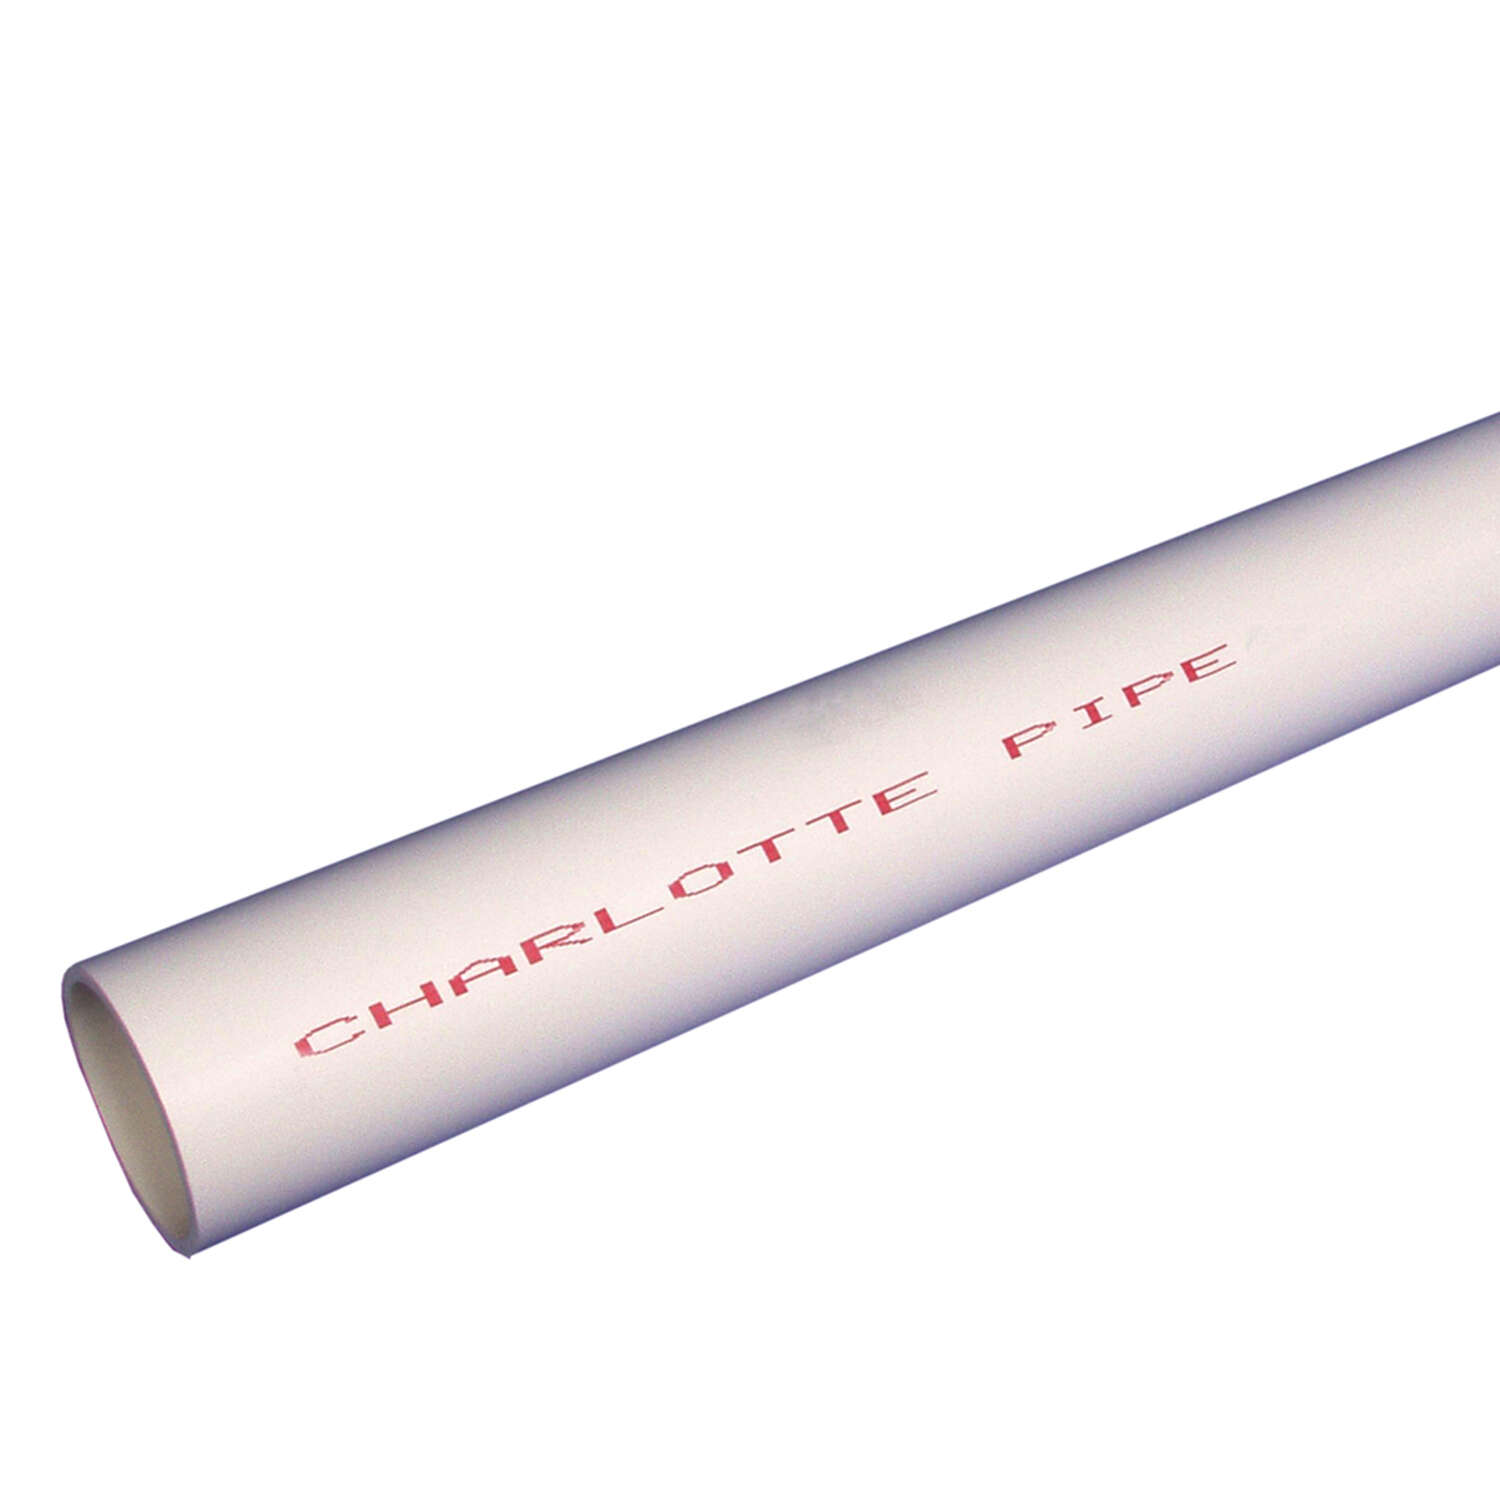 Charlotte Pipe  Schedule 40  PVC  Pipe  1 in. Dia. 5 ft. Plain End  450 psi